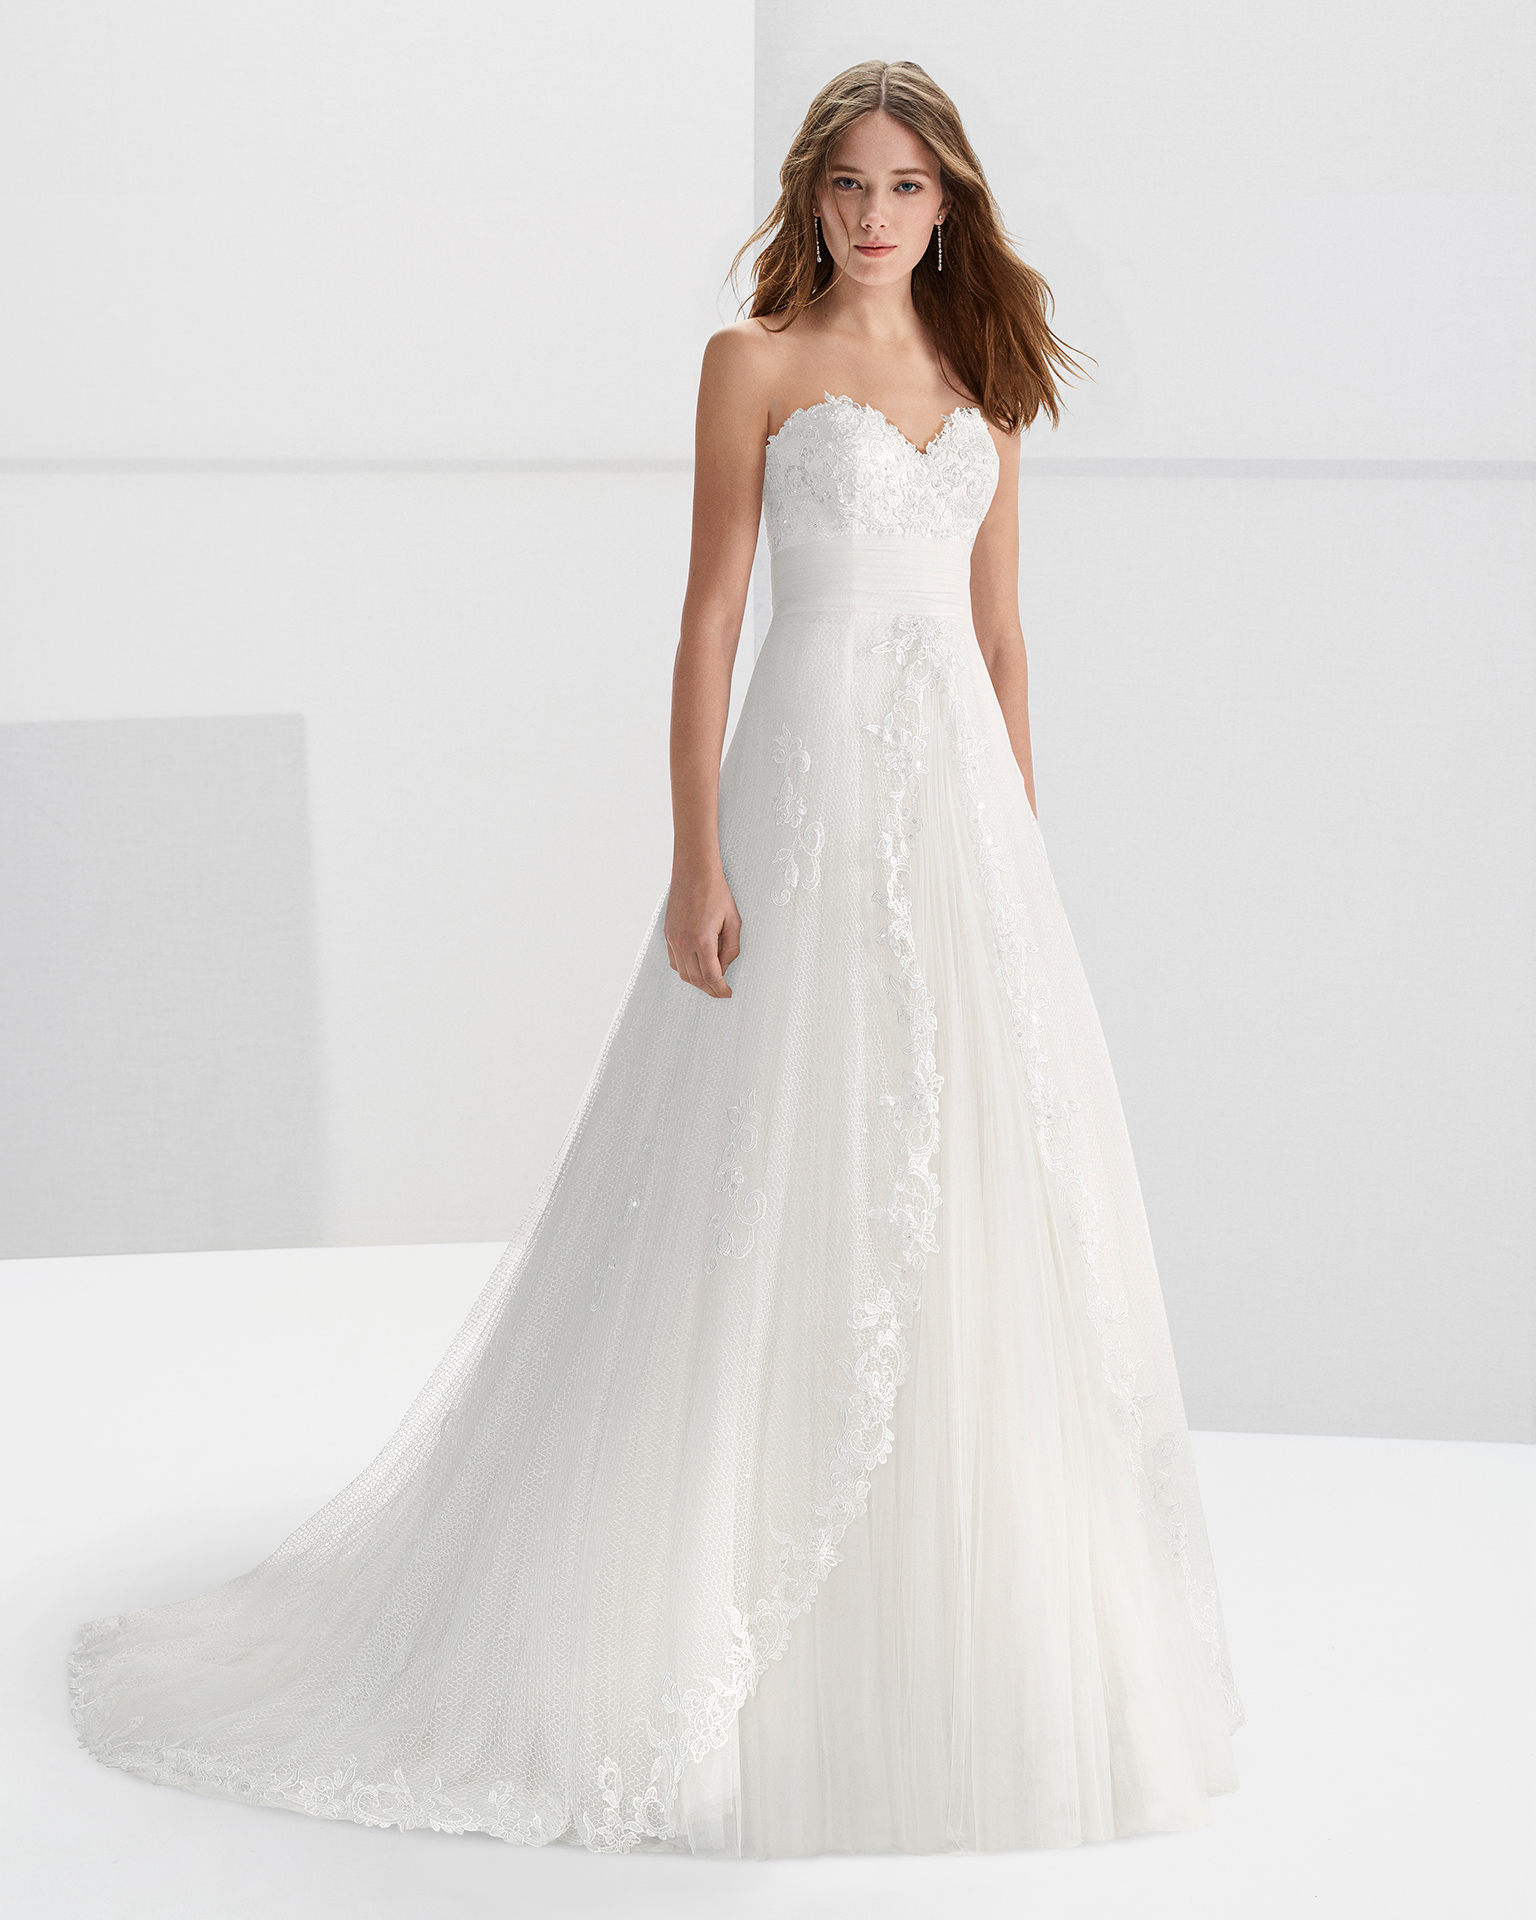 Princess-style beaded guipure lace wedding dress with sweetheart neckline.